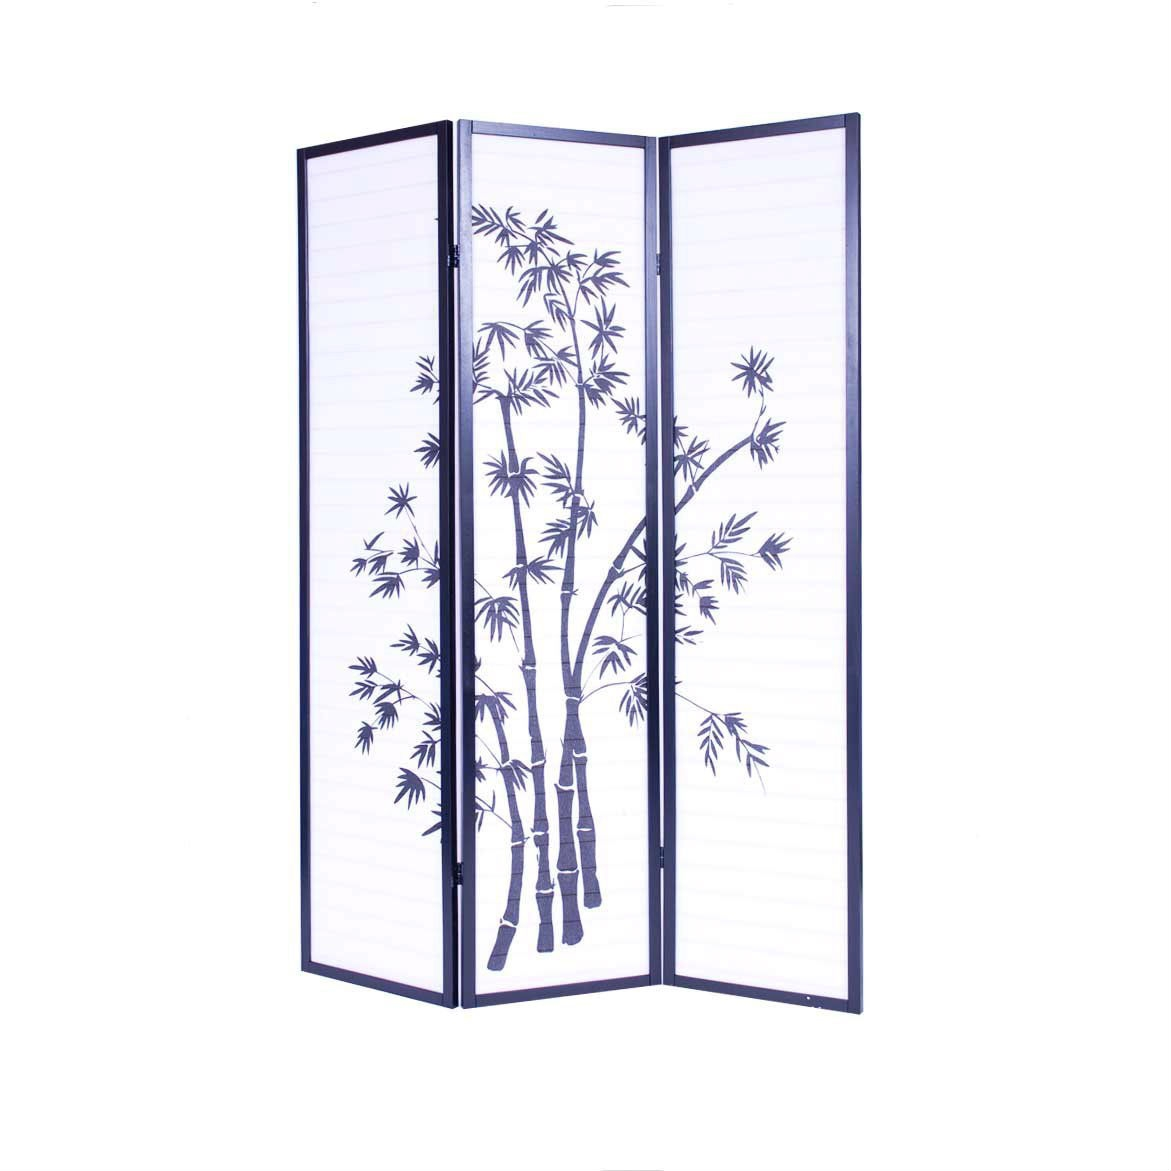 3-Panel Asian Shoji Screen Room Divider with Bamboo Print, RSCB4827461 :  This 3-Panel Asian Shoji Screen Room Divider with Bamboo Print has fiberglass-like heavy duty rice paper. Japanese-inspired room divider for creating privacy in small spaces, lightweight but stable frame made of wood with black finish.